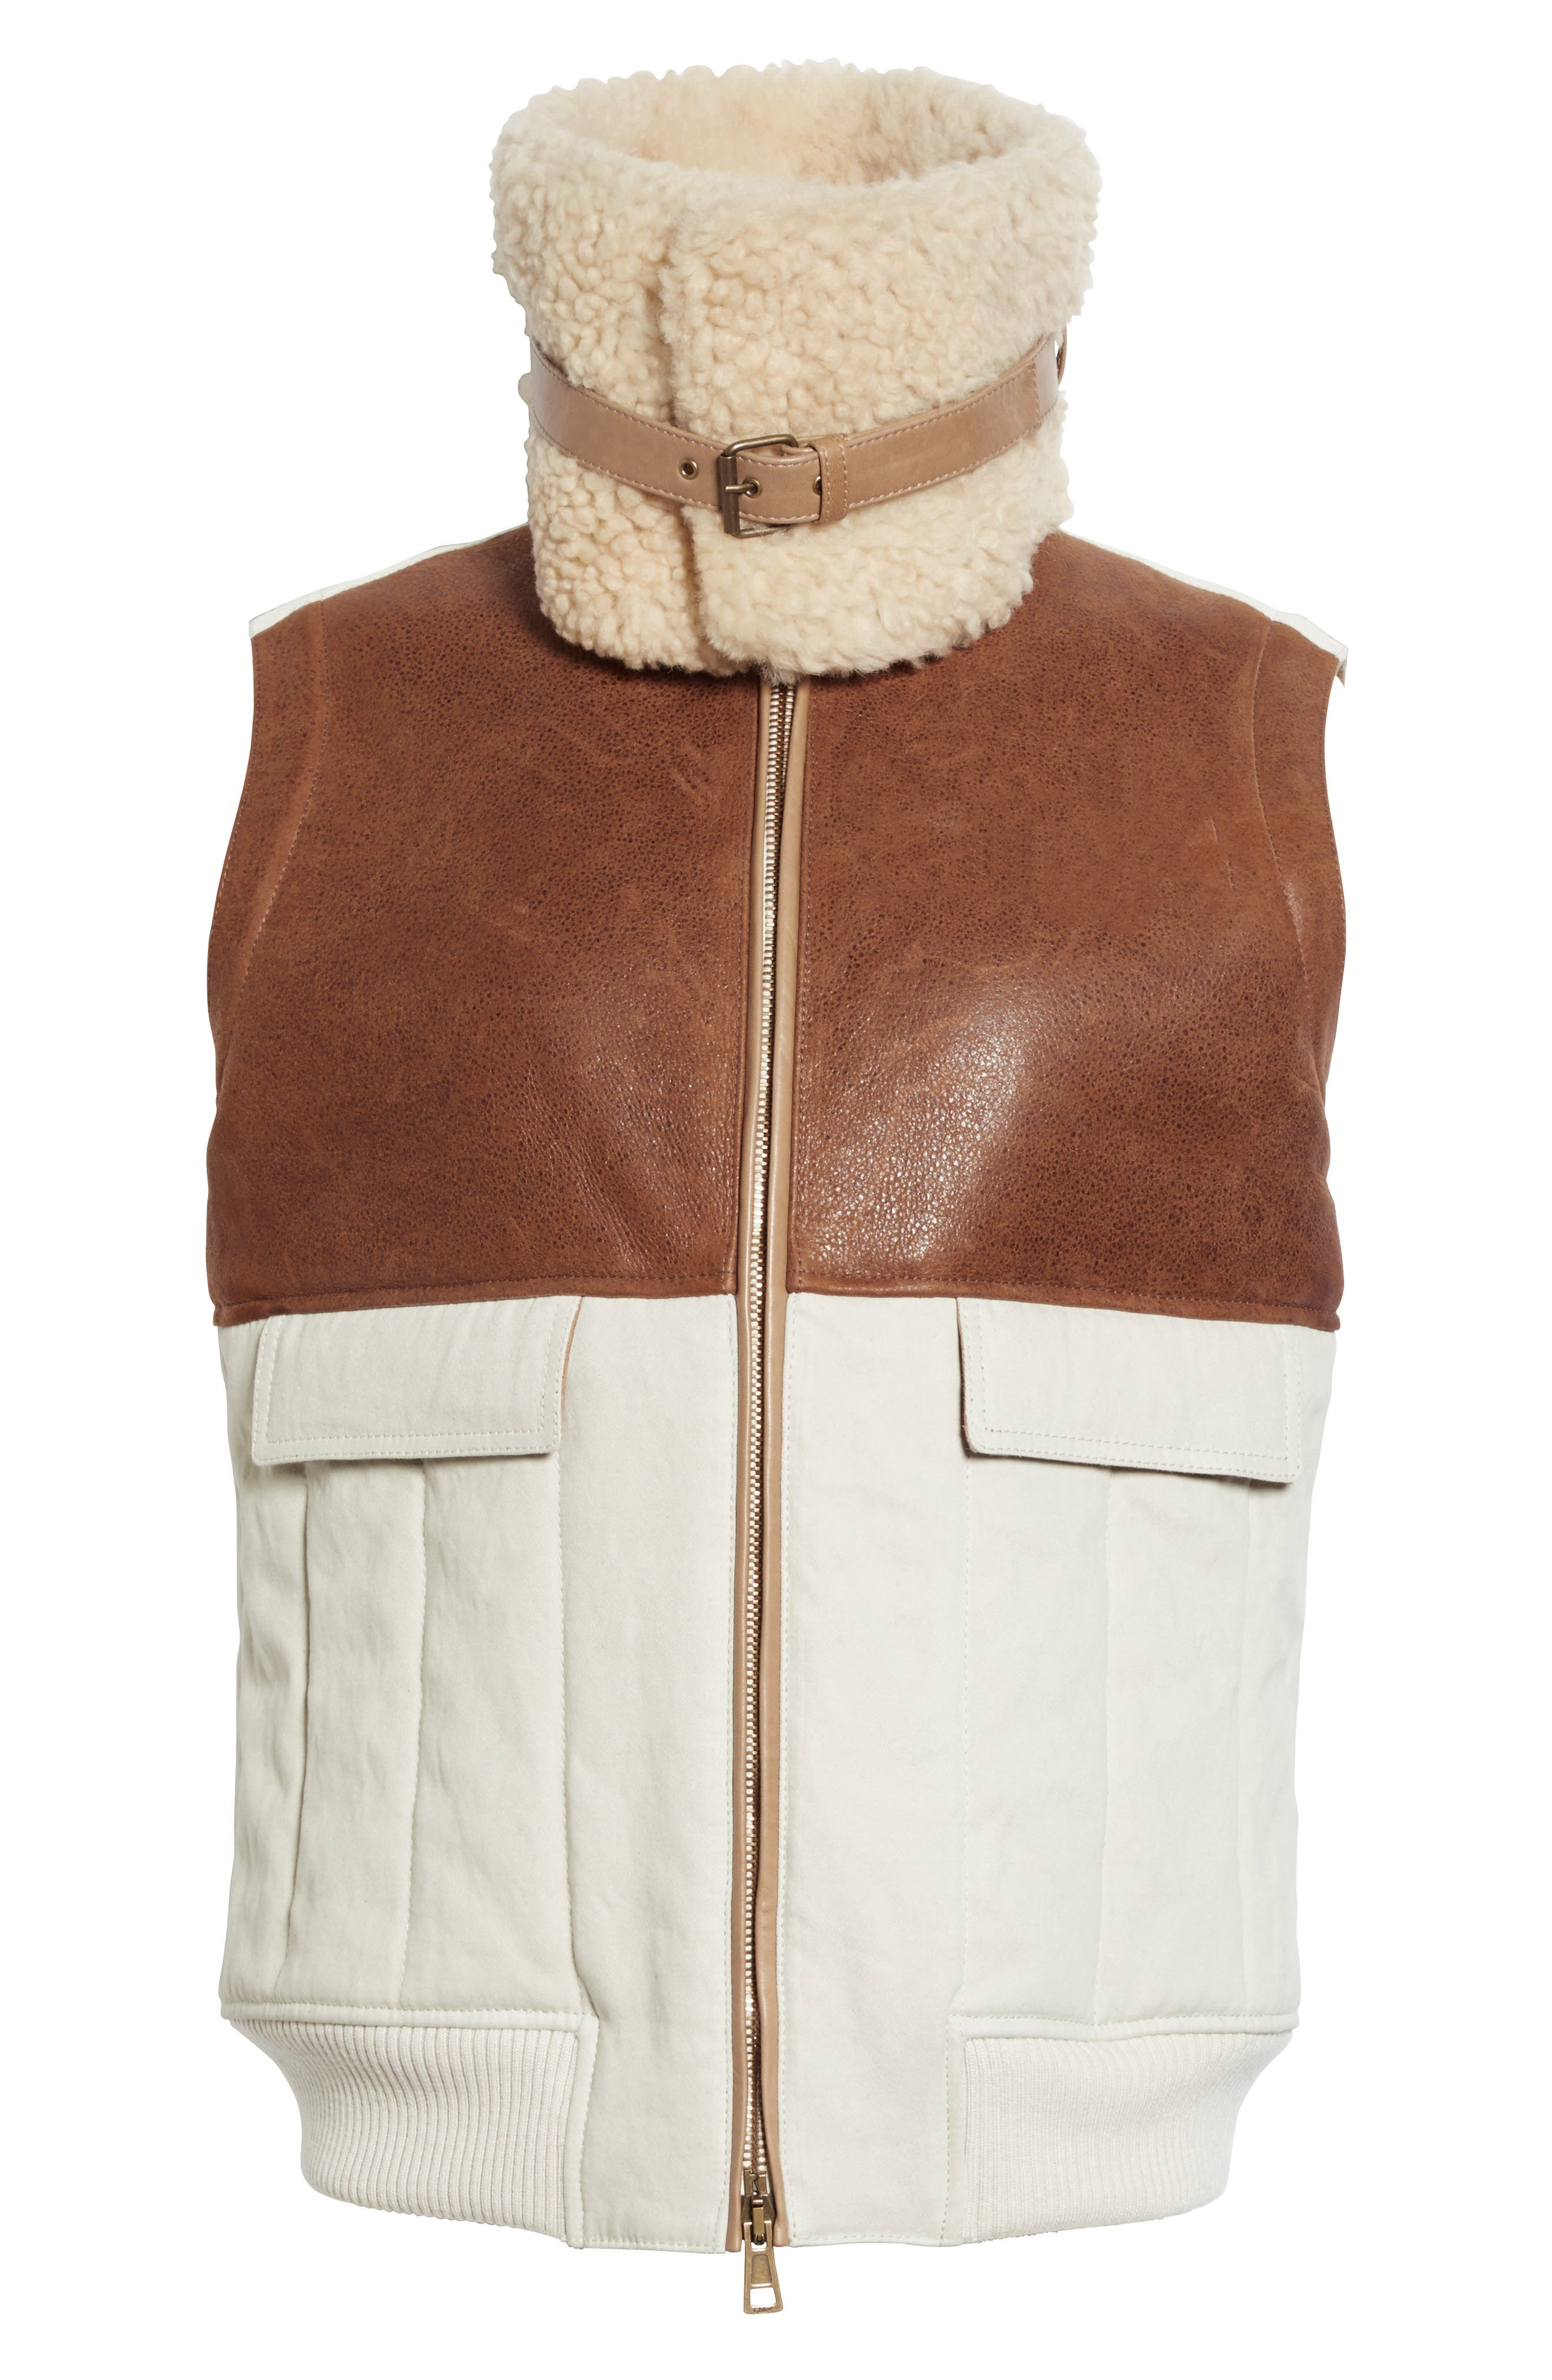 Genuine Shearling Trim Leather & Cotton Vest,                             Alternate thumbnail 5, color,                             200